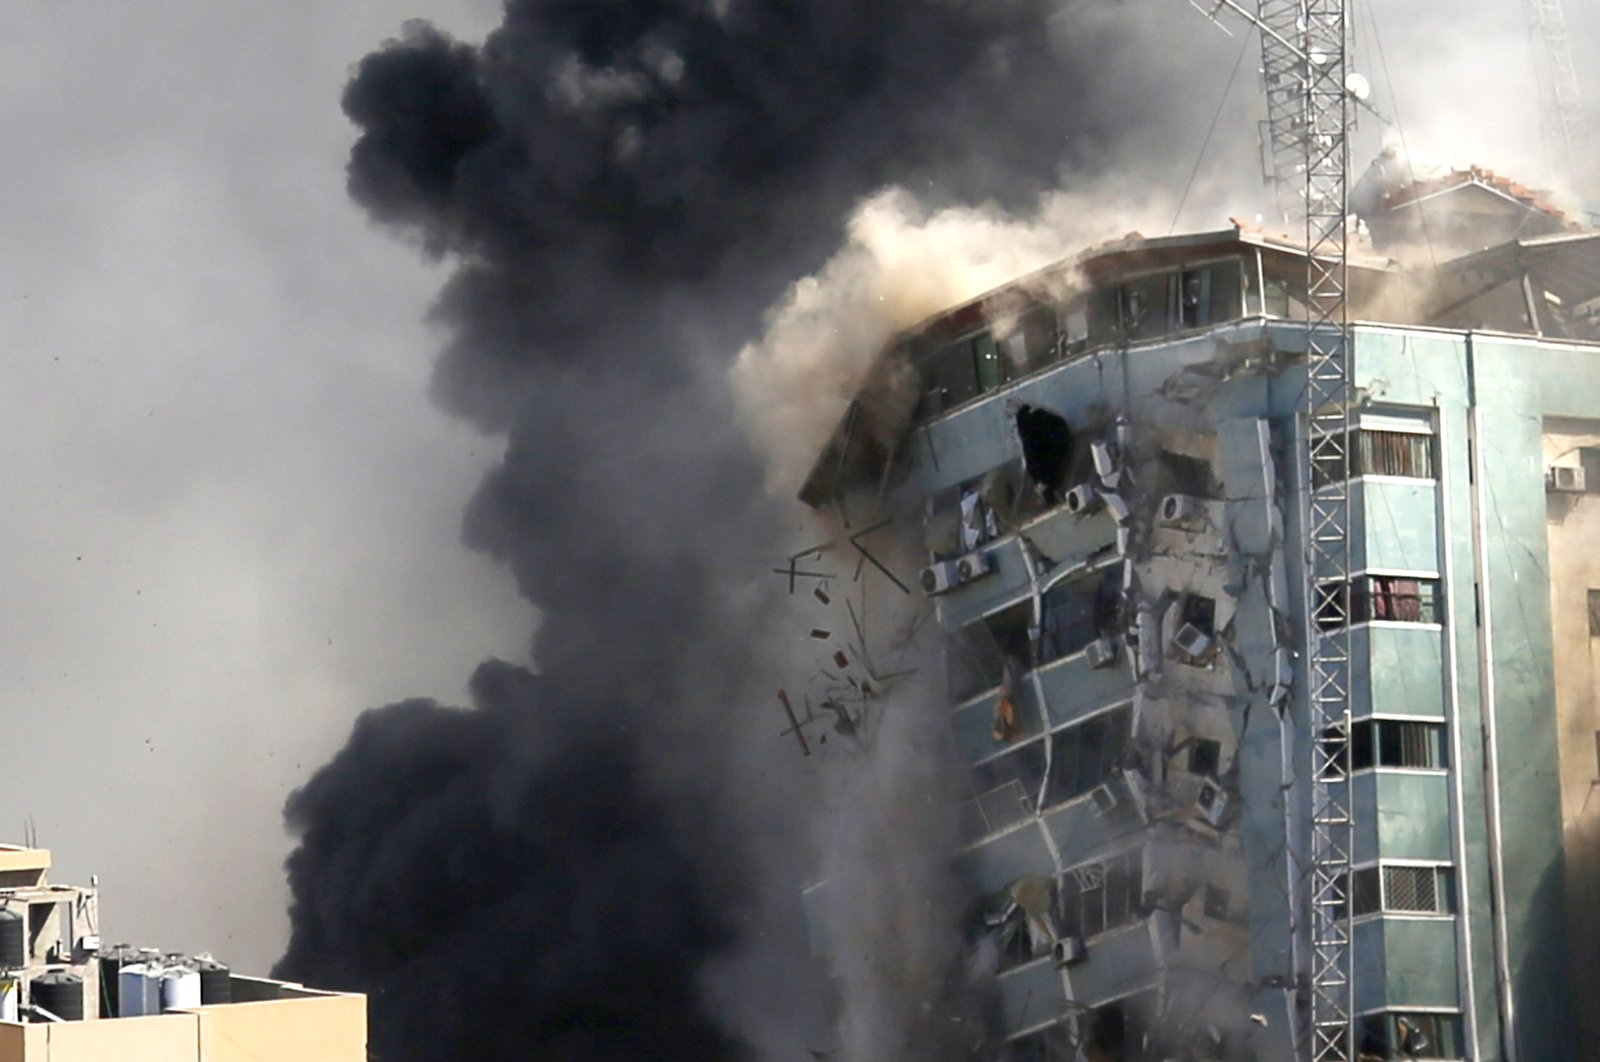 The building housing the offices of The Associated Press and other media in Gaza City collapses after it was hit by an Israeli airstrike, Palestine, May 15, 2021. (AP Photo)